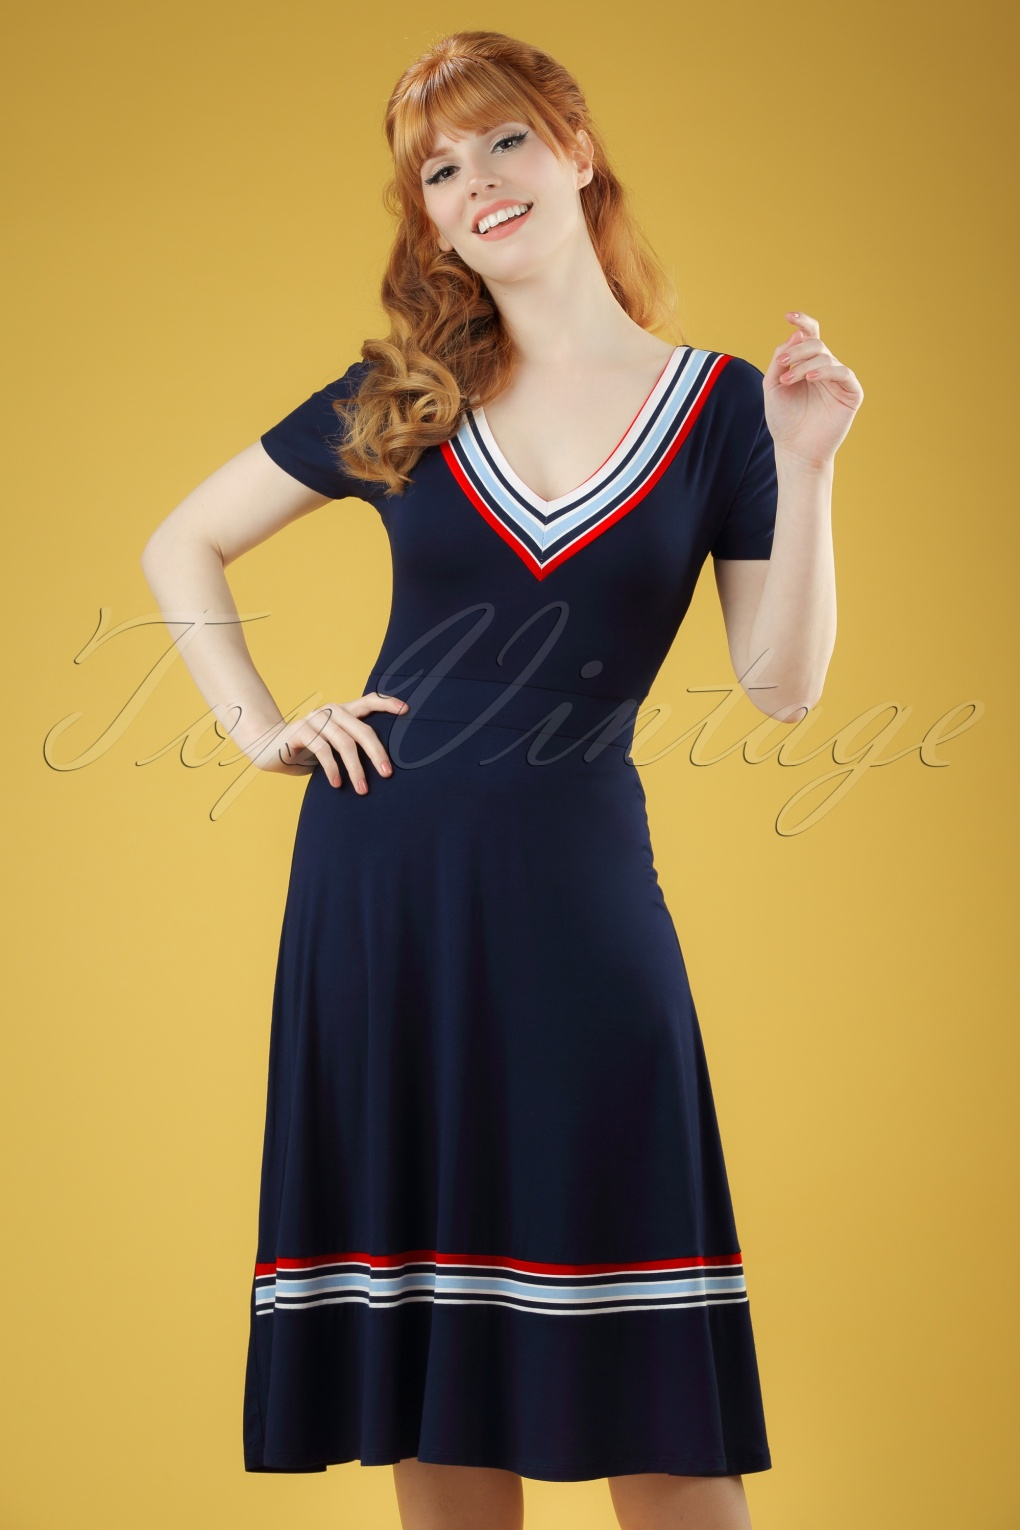 1960s Style Dresses- Retro Inspired Fashion 60s Toulon Dress in Navy £72.15 AT vintagedancer.com